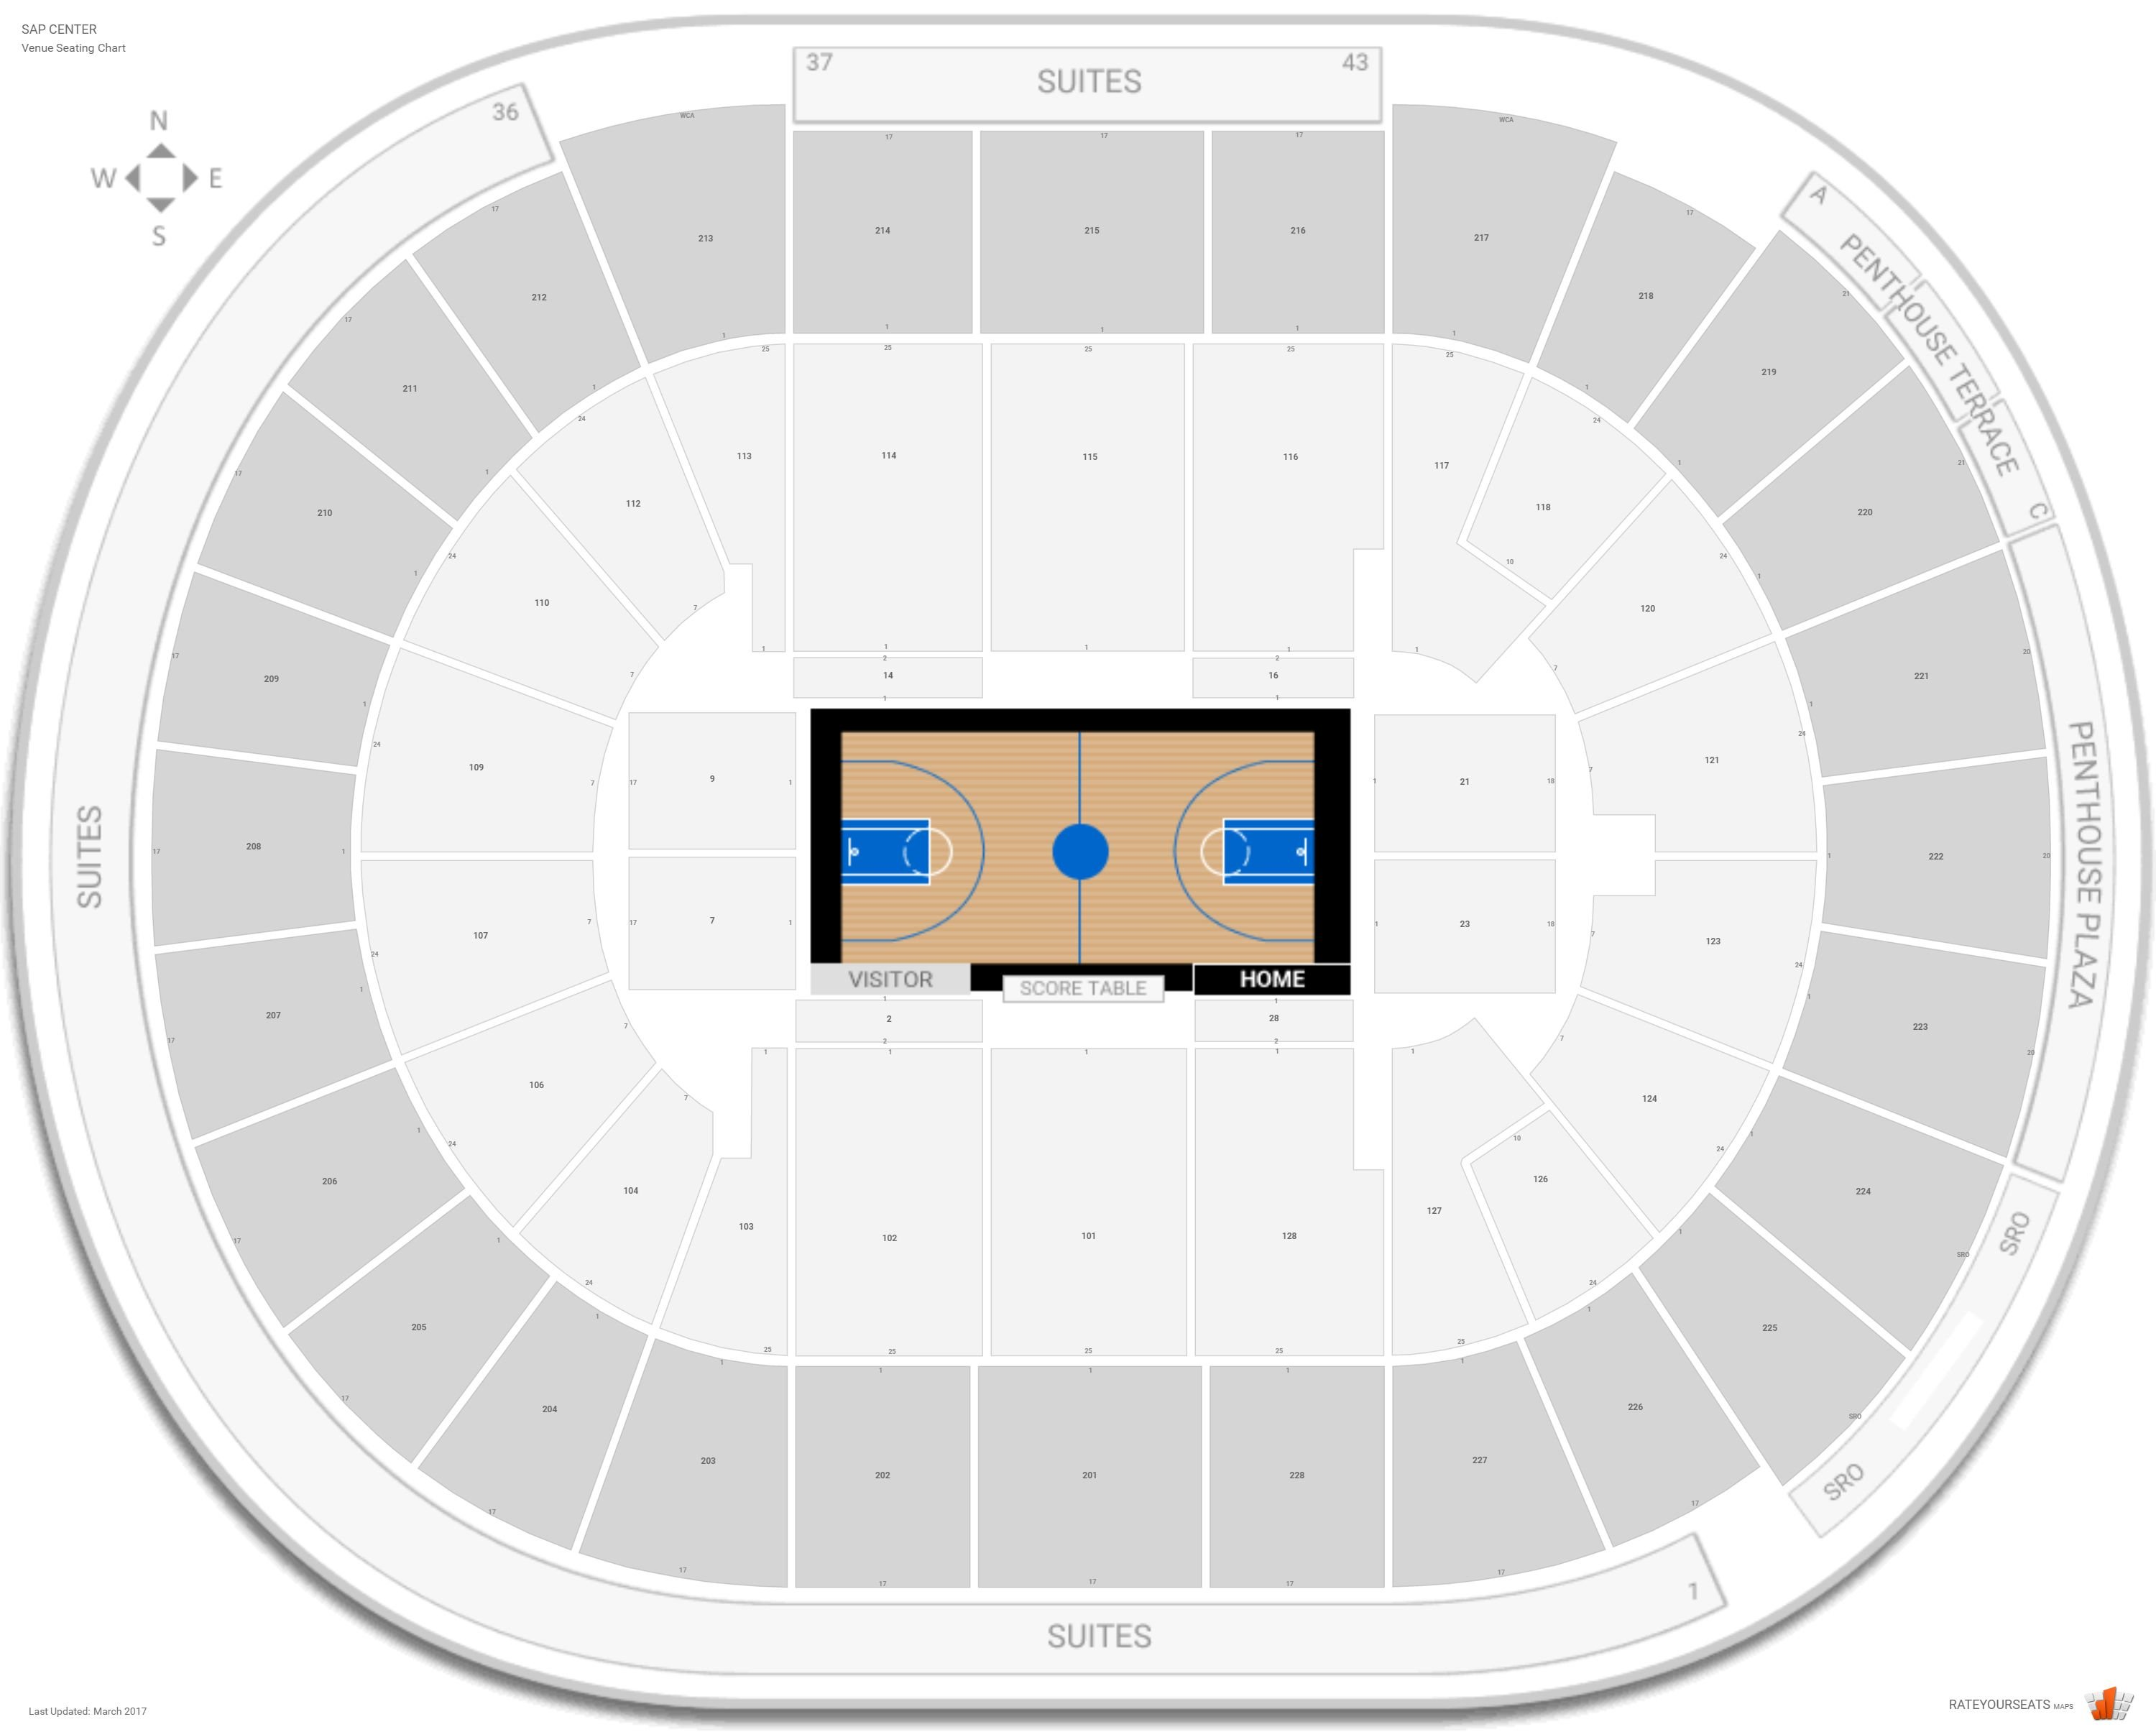 SAP Center Basketball Seating - RateYourSeats.com on sap center tickets, sap center san jose, sap center twitter, sap center santa clara, sap concert seating, sap center suites, sap center hotels, sap seating-chart hockey, sap theater seating, sap center events, sap center parking, sap center sharks seating-chart, sap center schedule,